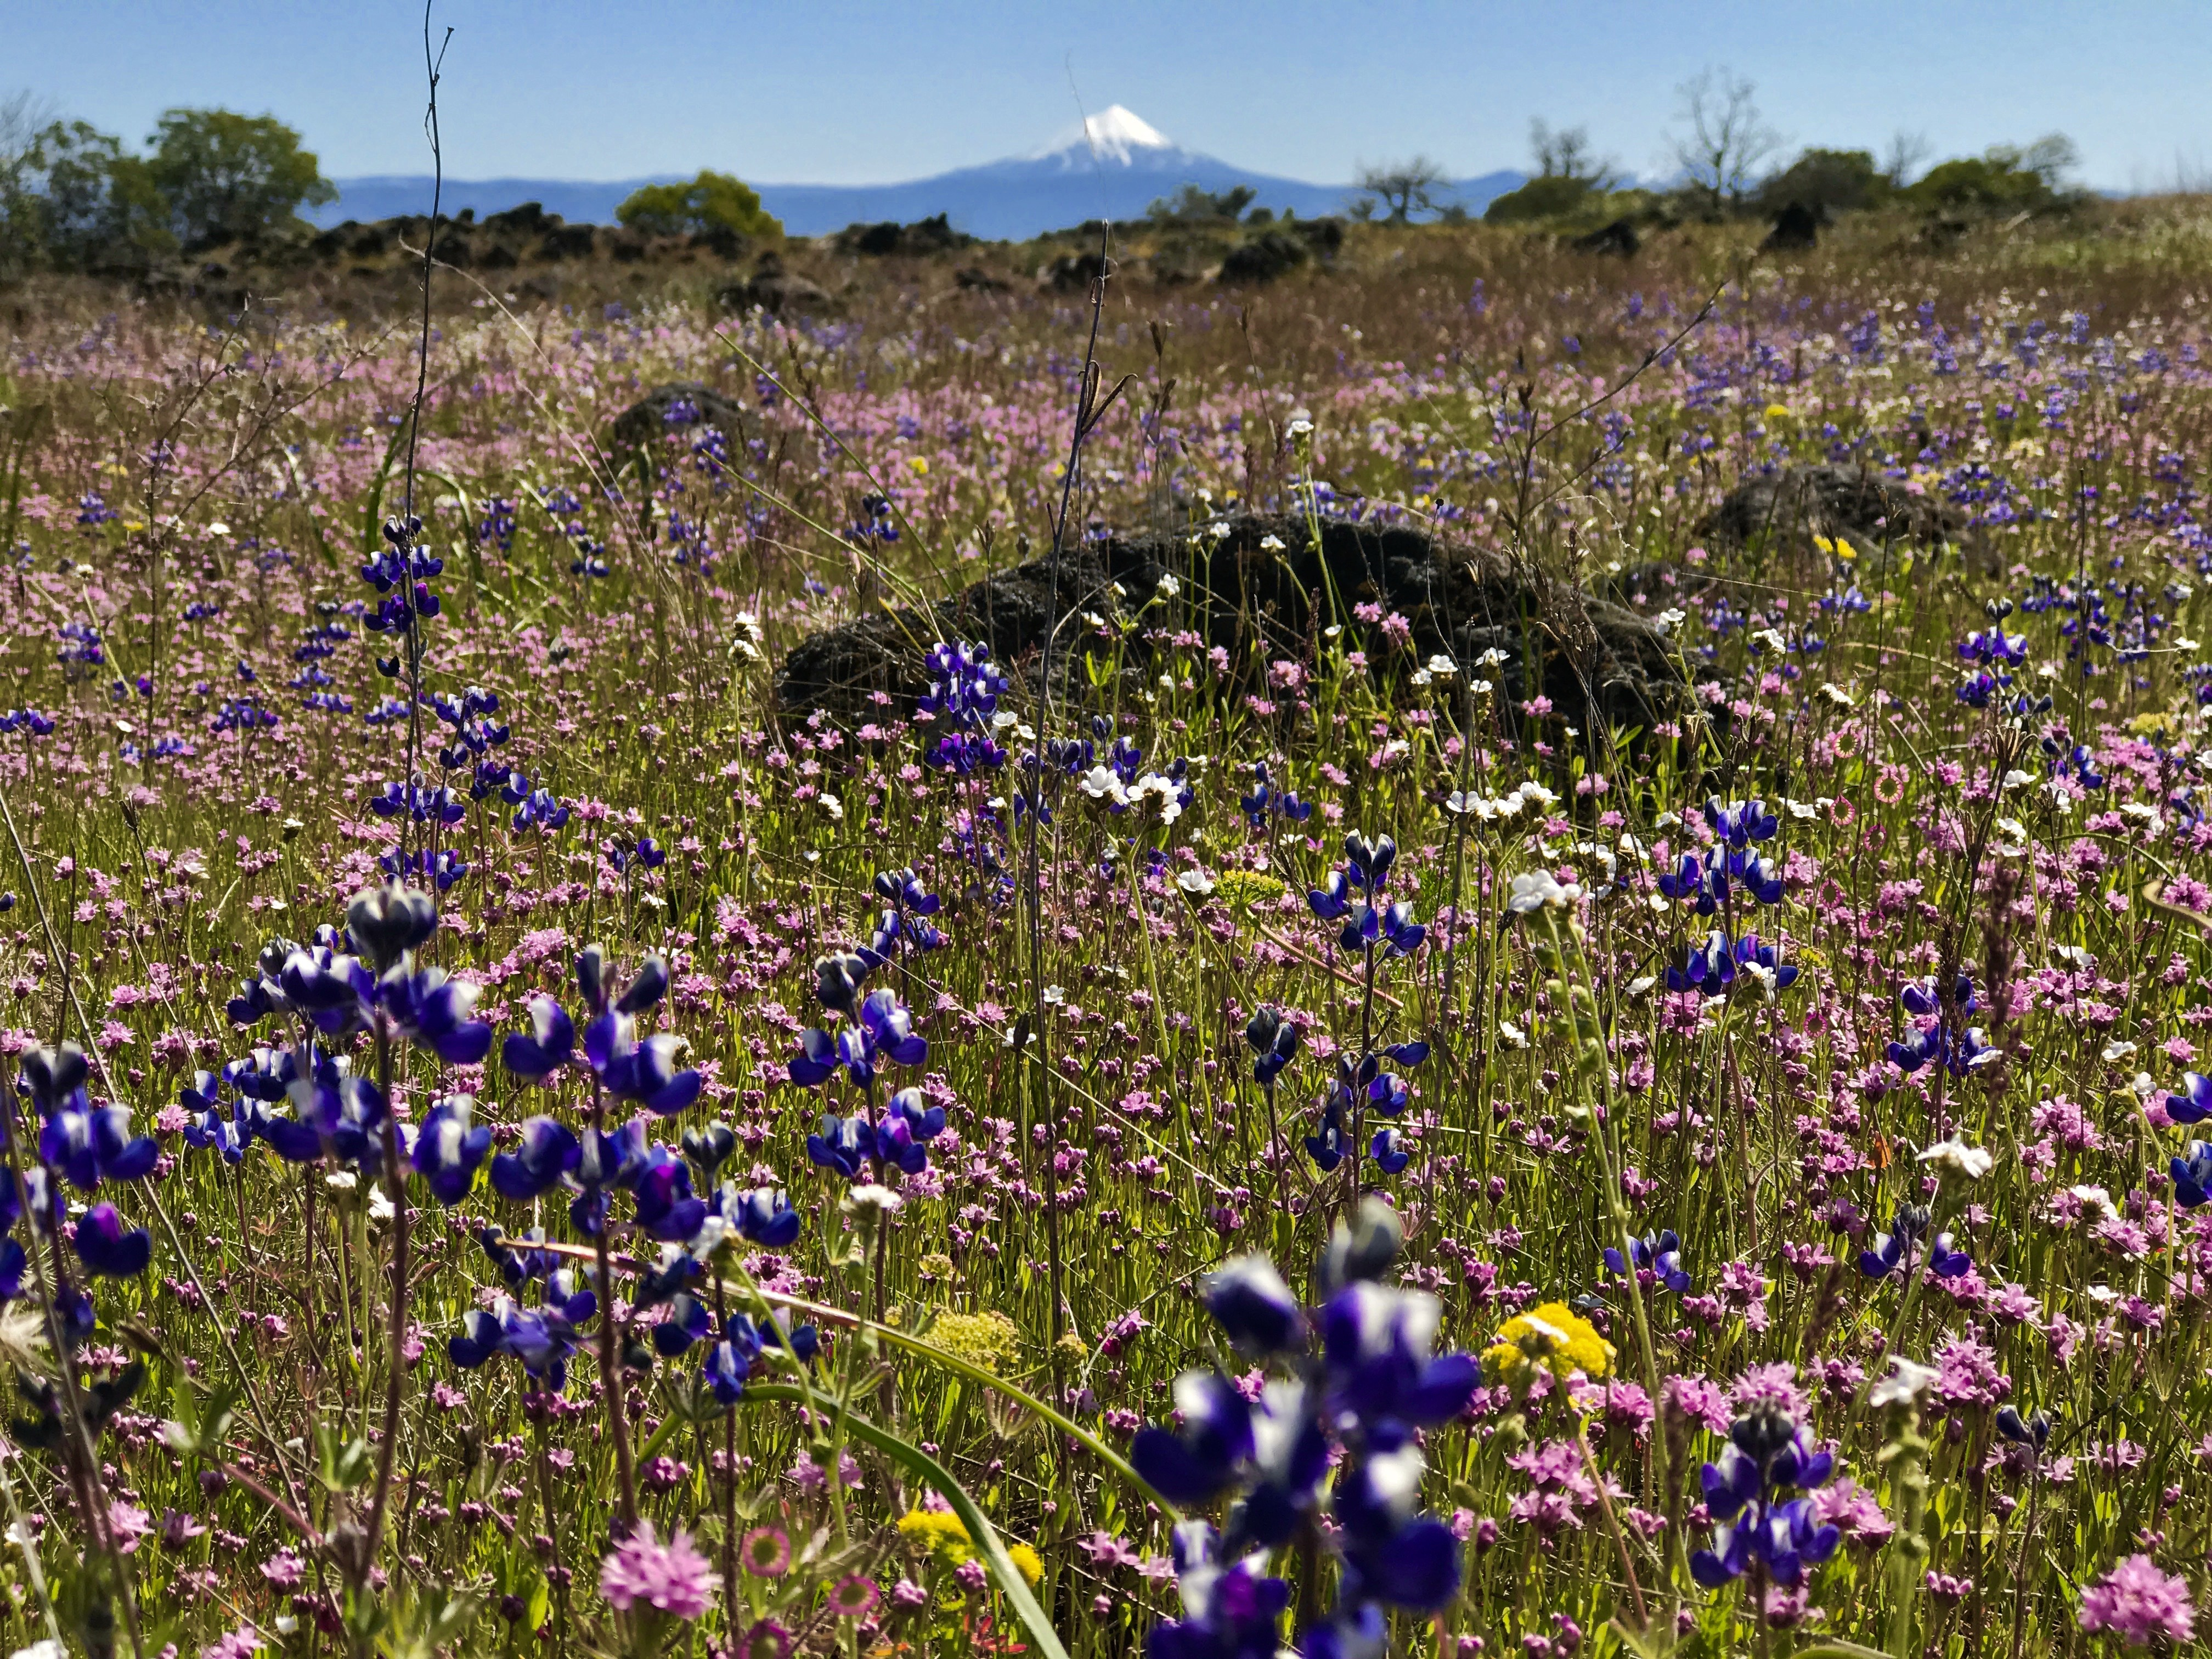 A field covered with blue blossoms with a mountain looming in the background.